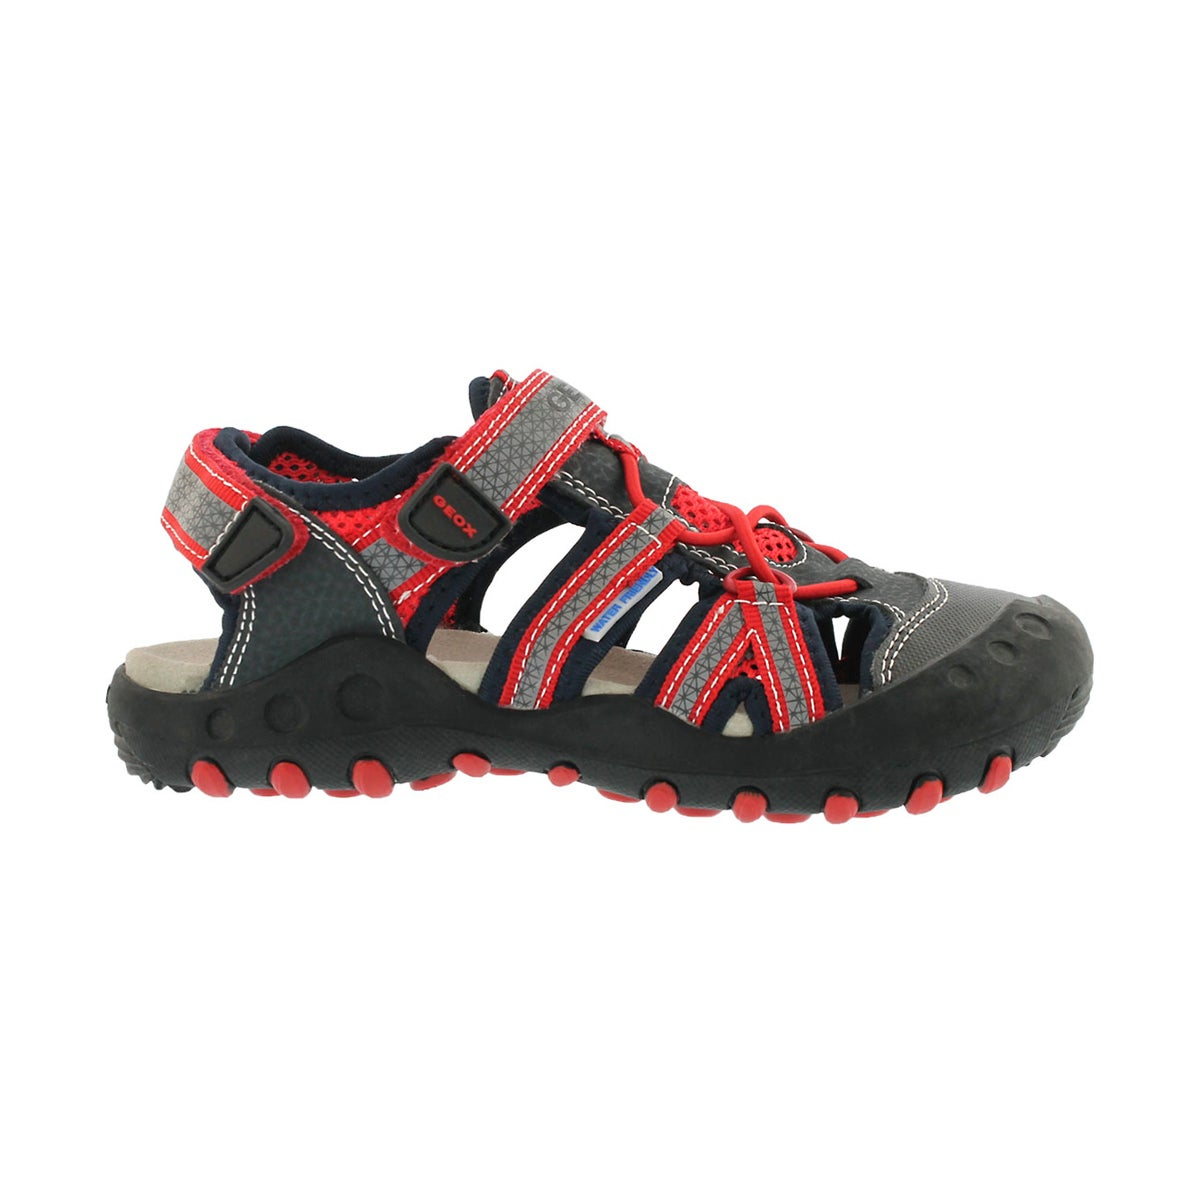 Bys Kyle navy/red closed toe sandal